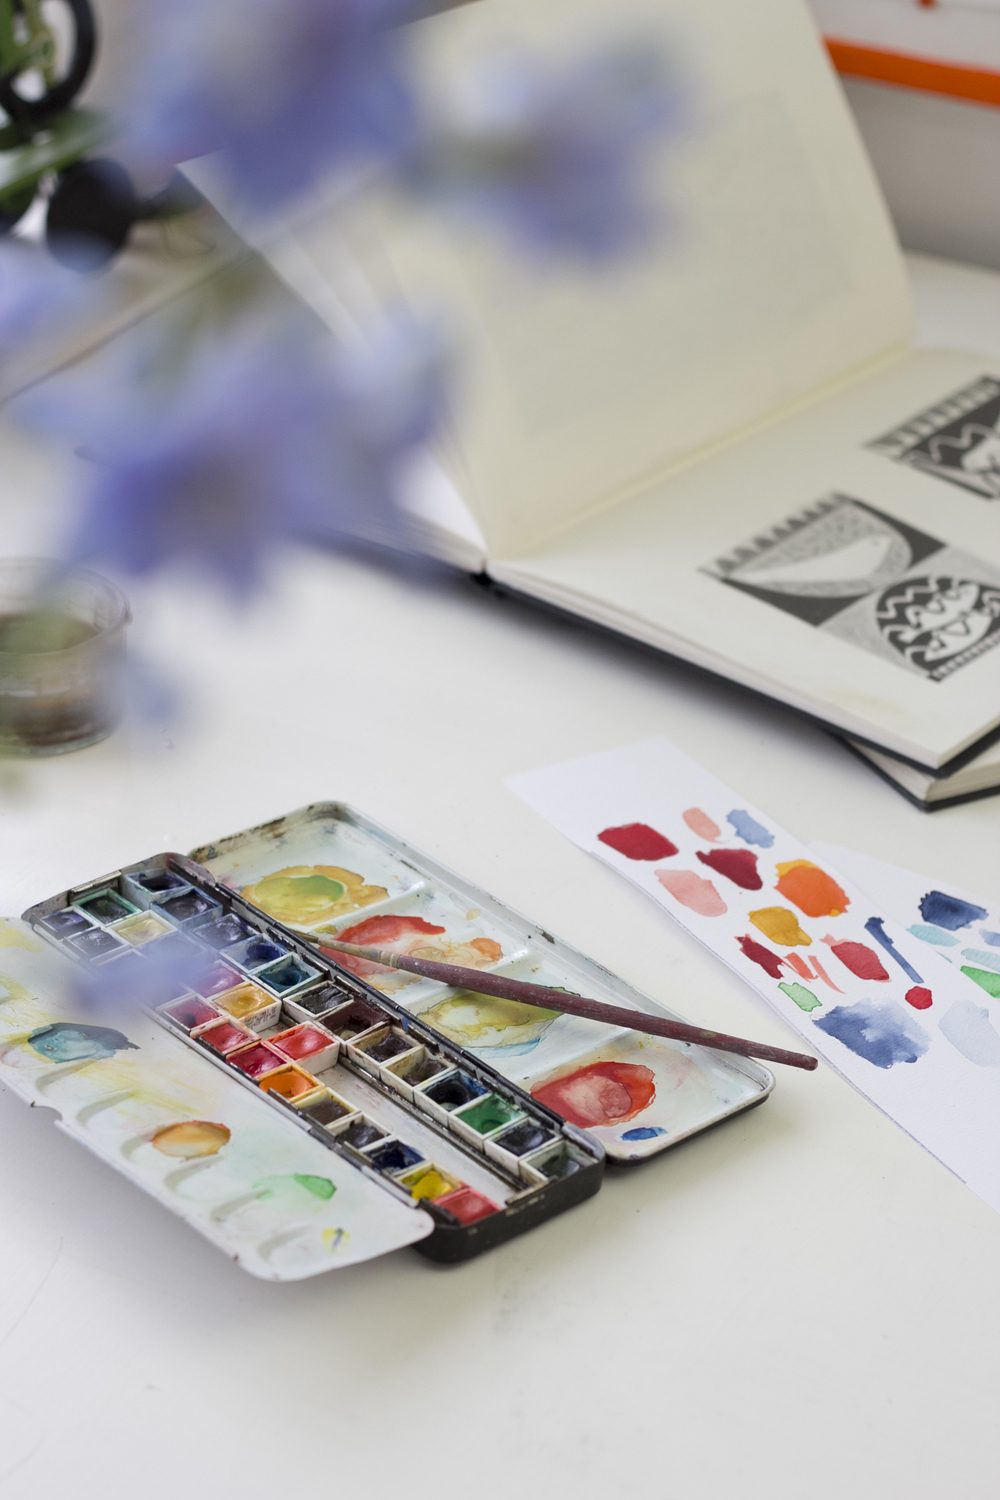 Sarah often uses watercolours as part of her design process.